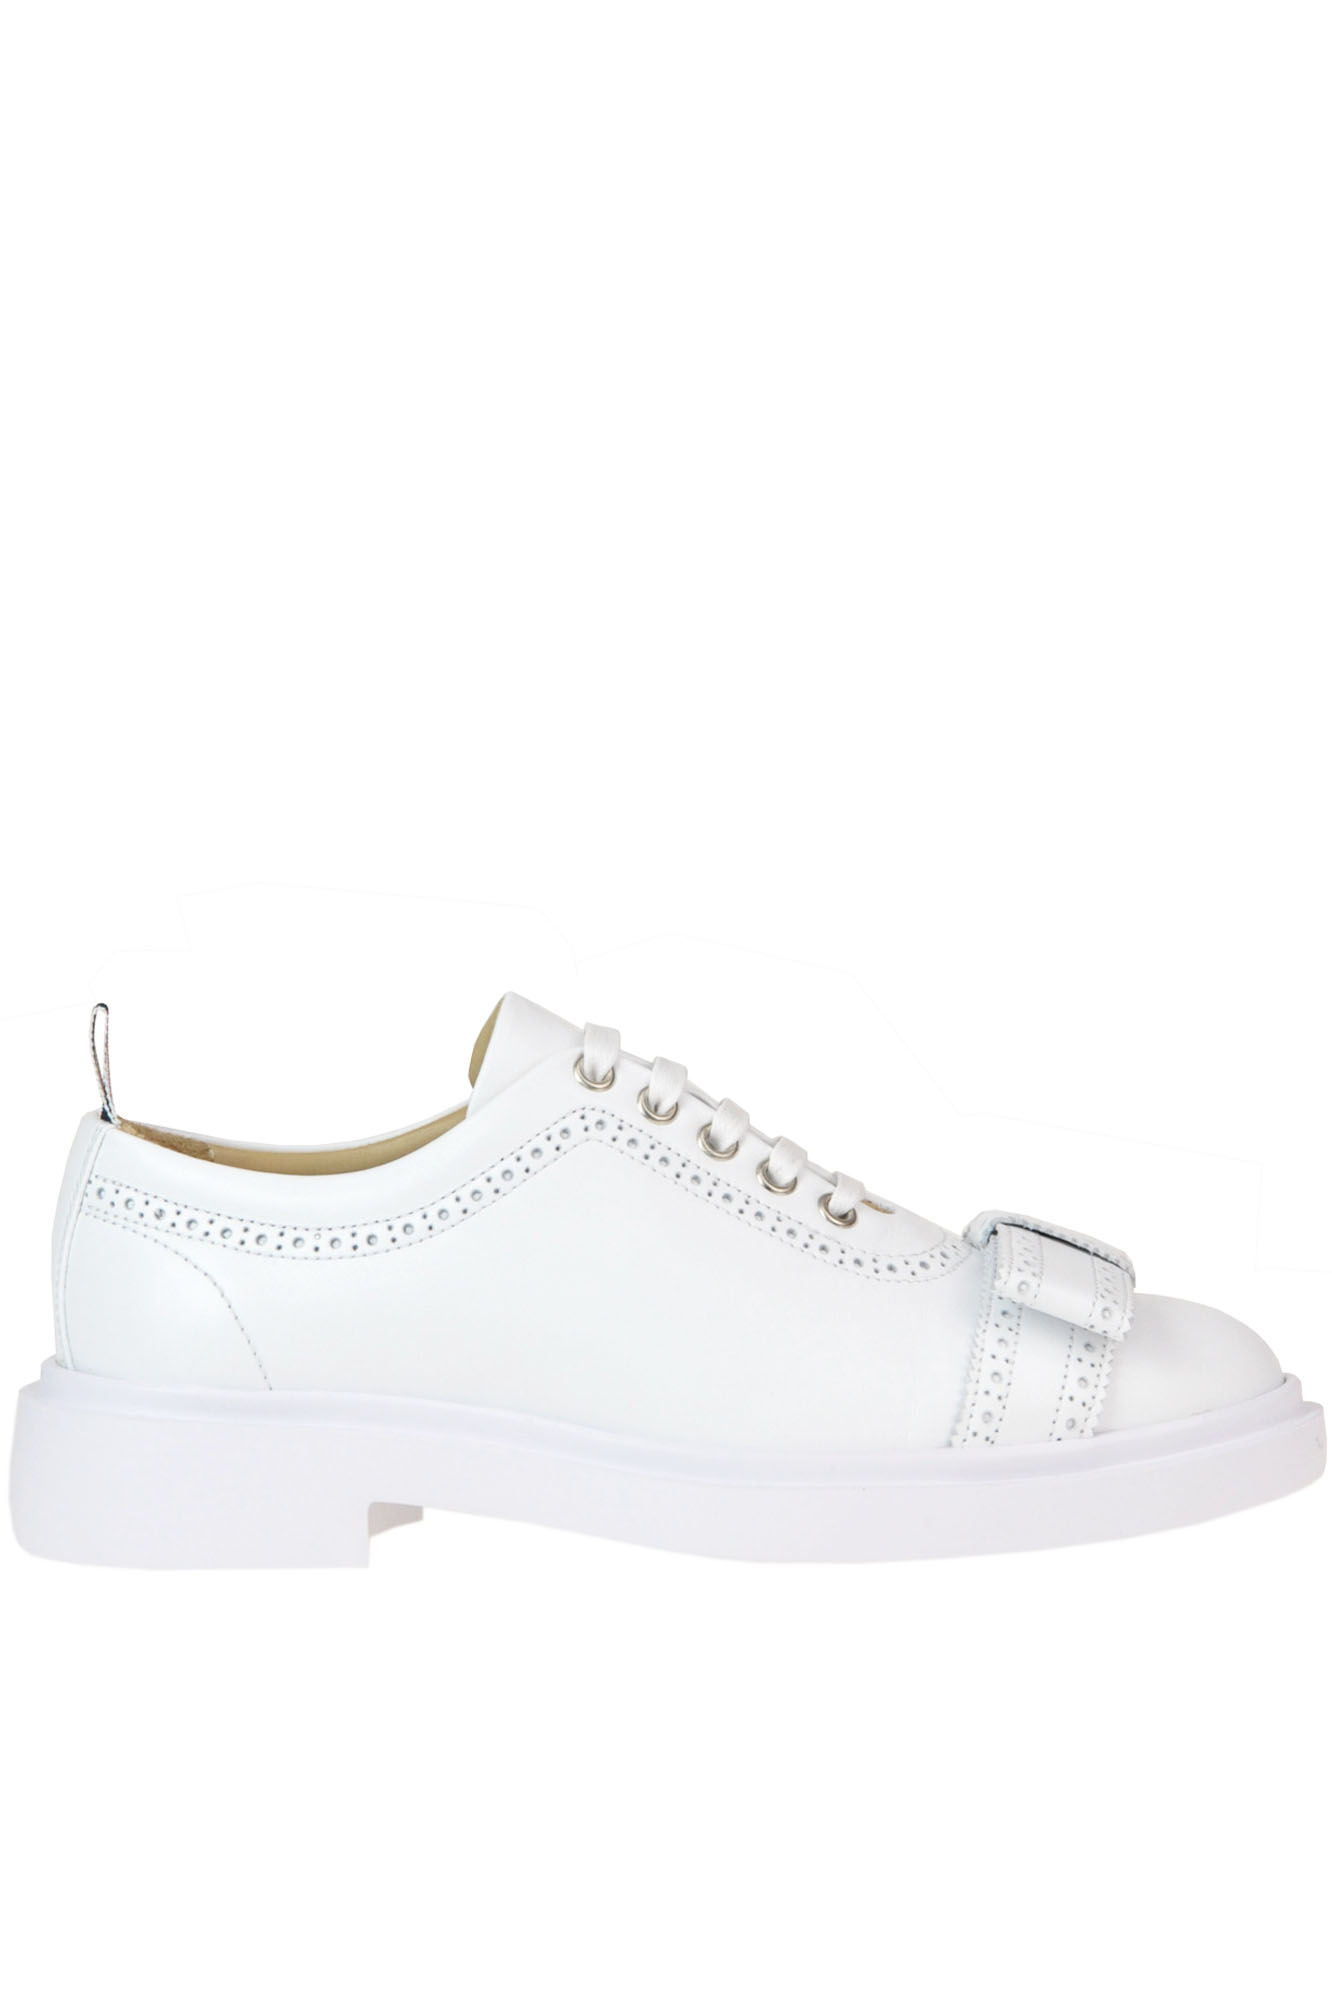 Thom Browne 'Brogued Trainer' Leather Shoes In White